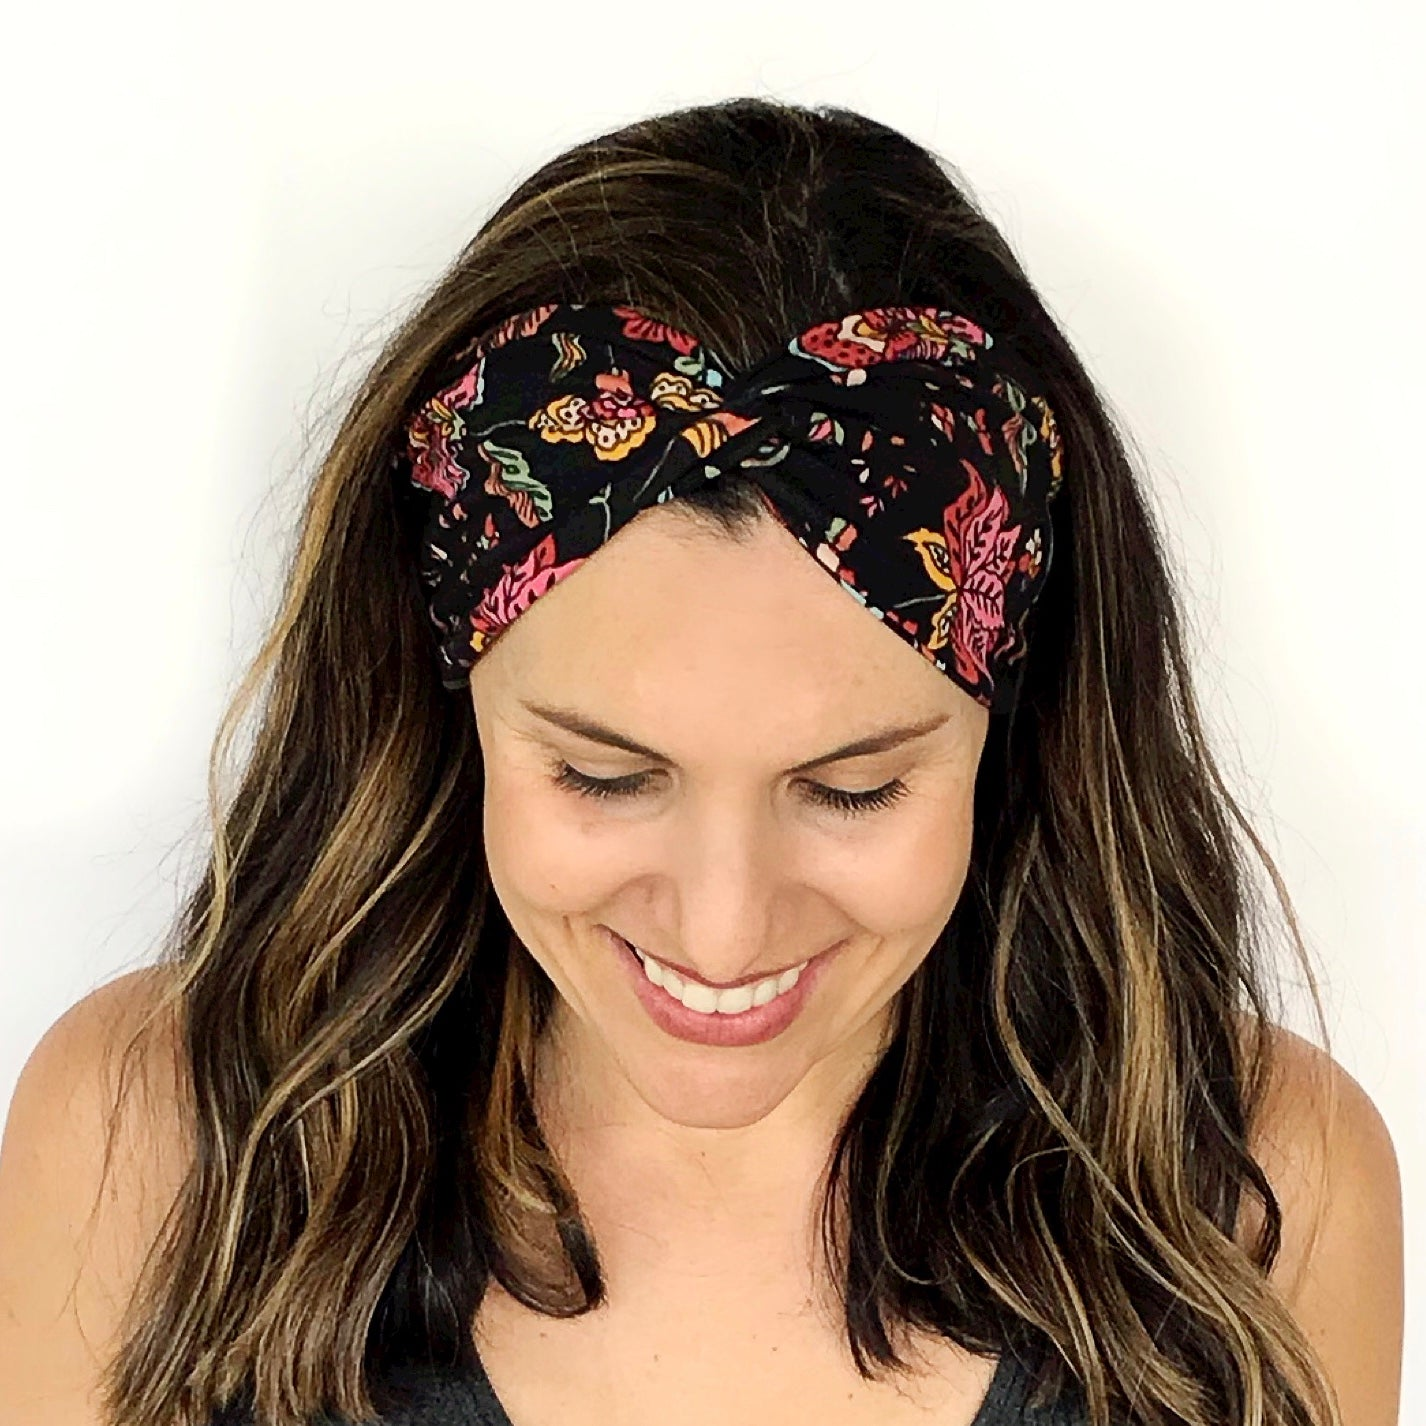 Maya Twisty Turban Headband